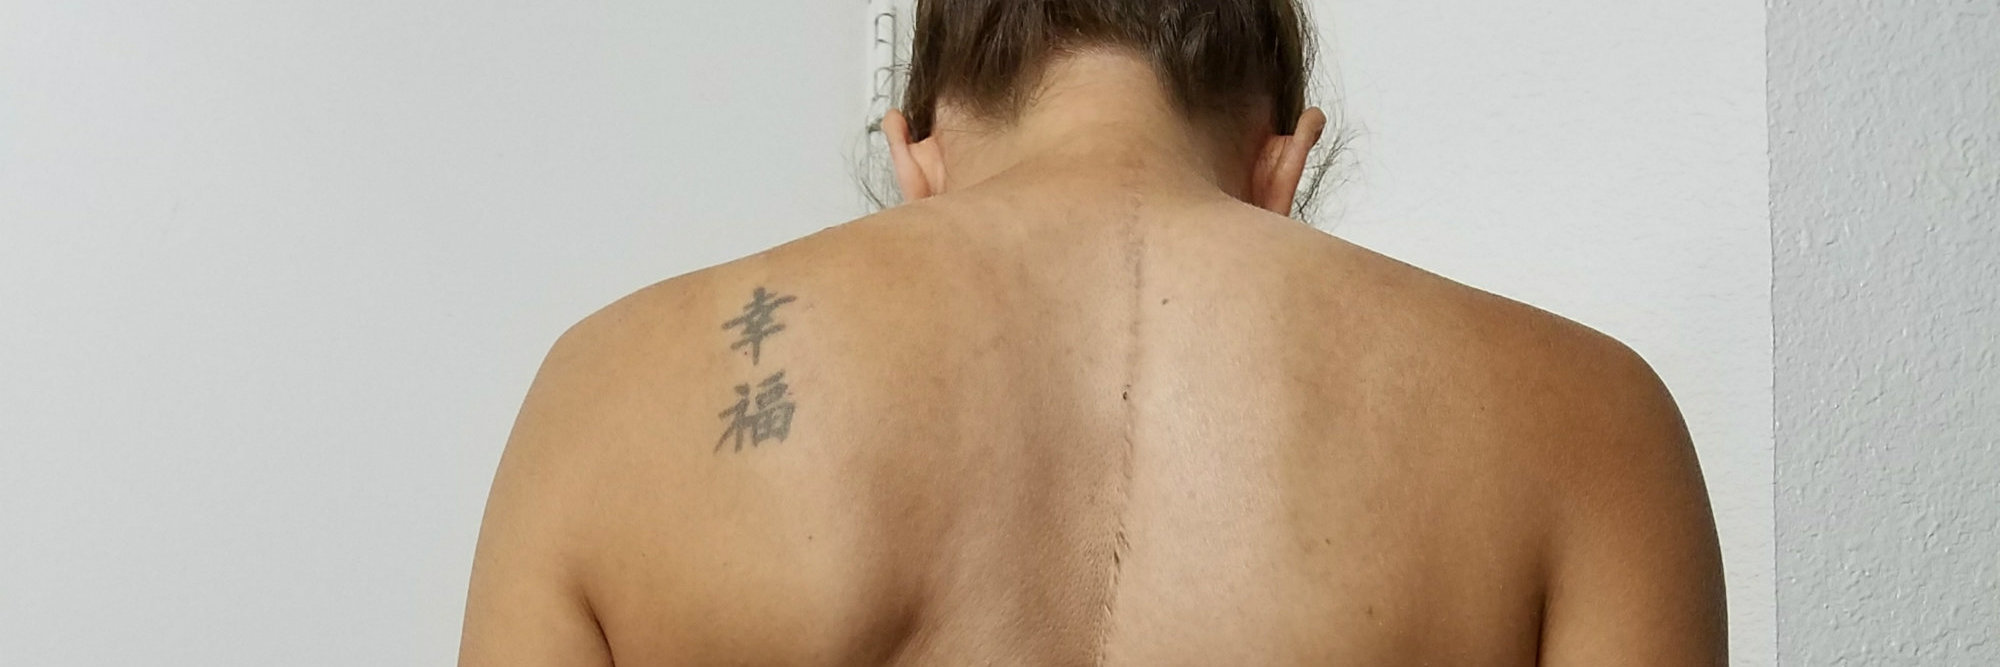 woman shows the hump on her back from scoliosis